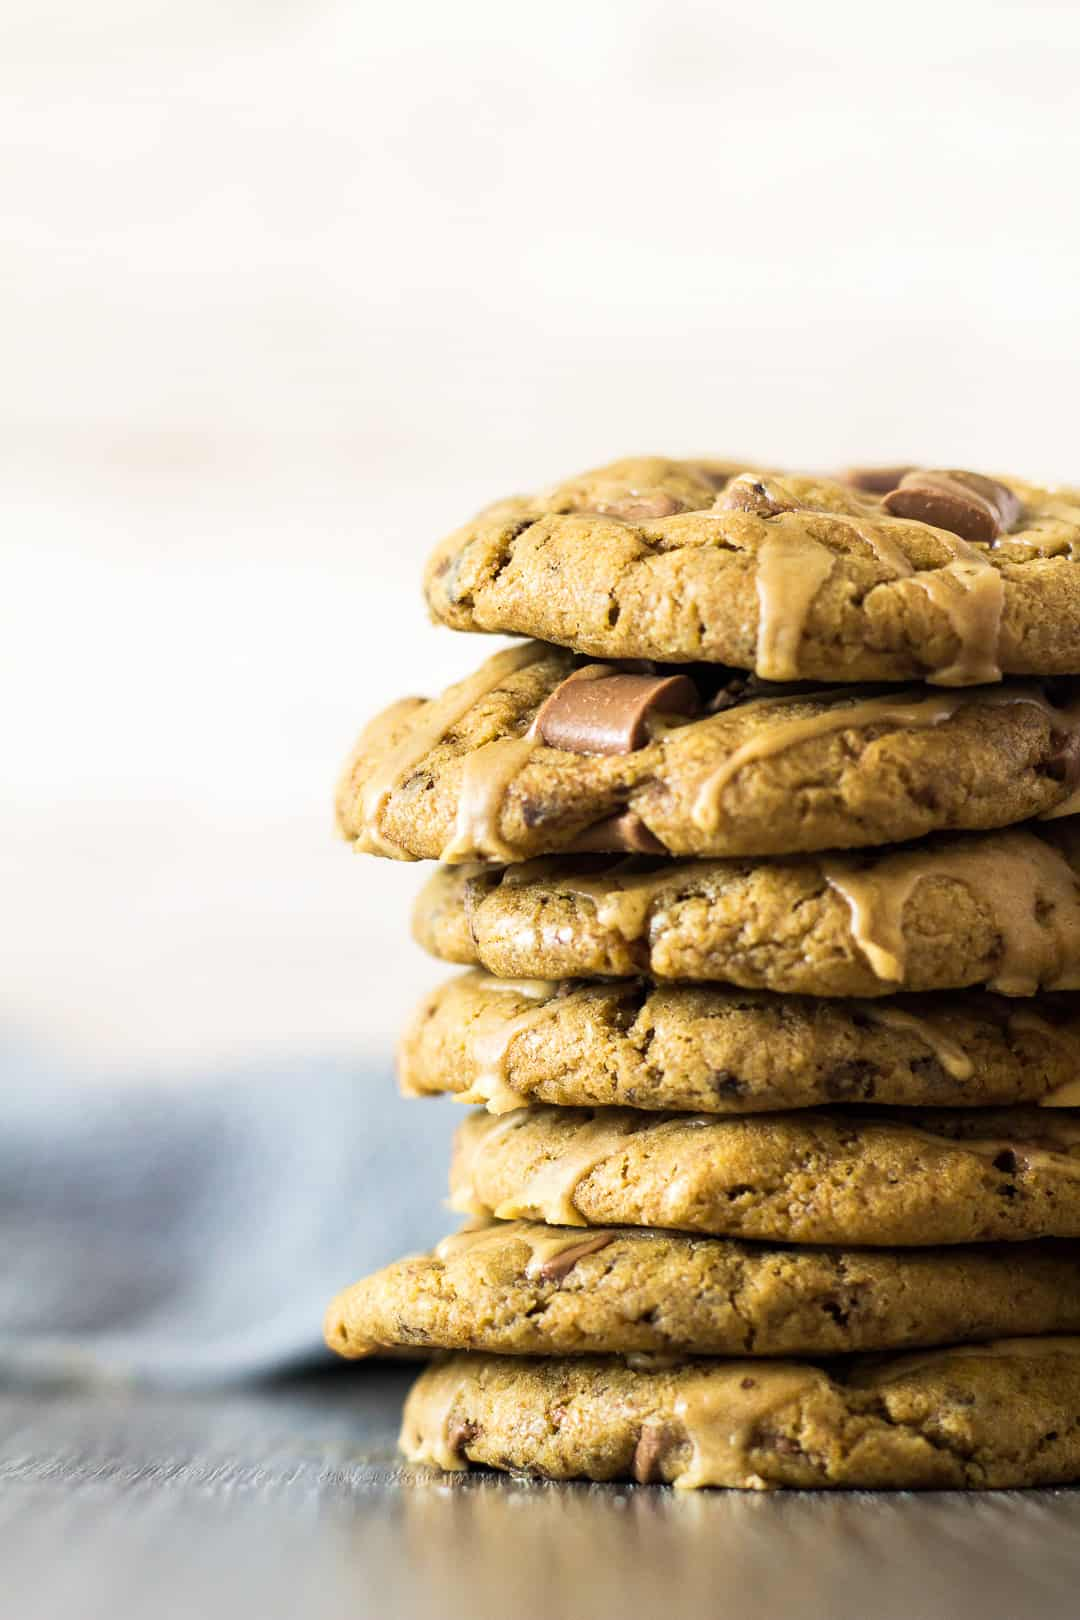 A close-up view of a tall stack of Chocolate Chip Coffee Cookies.